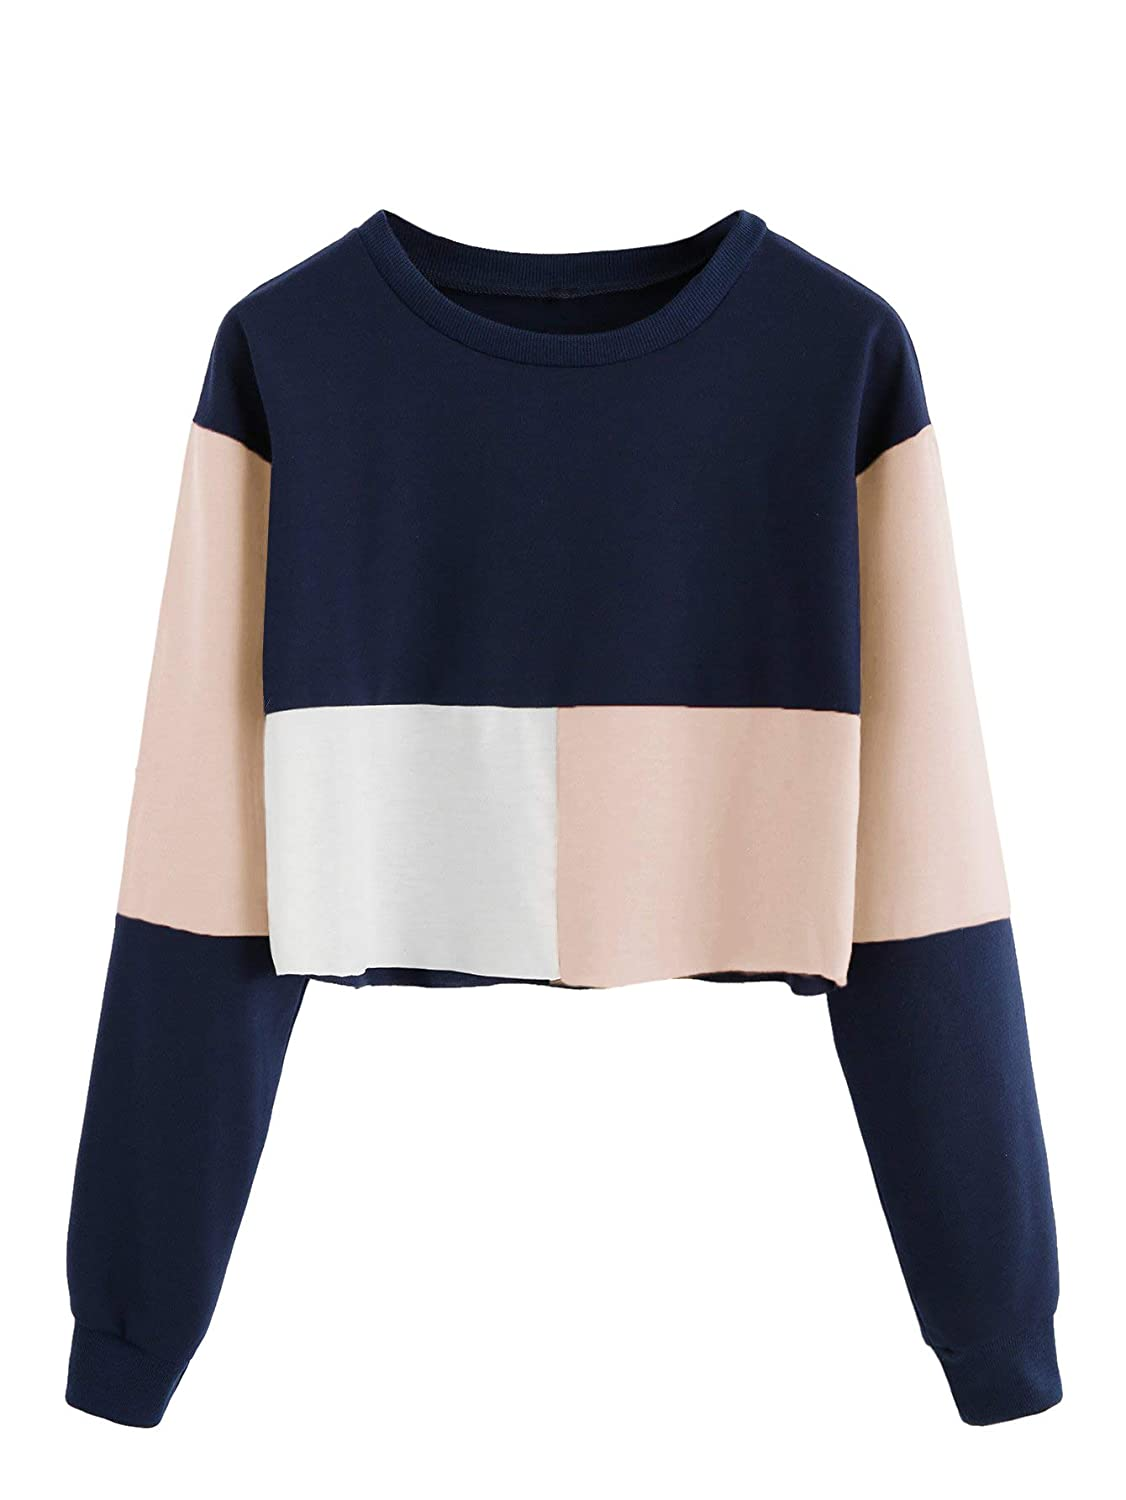 Multicolor7 Verdusa Women's Round Neck Long Sleeve color Blocked Crop Sweatshirt